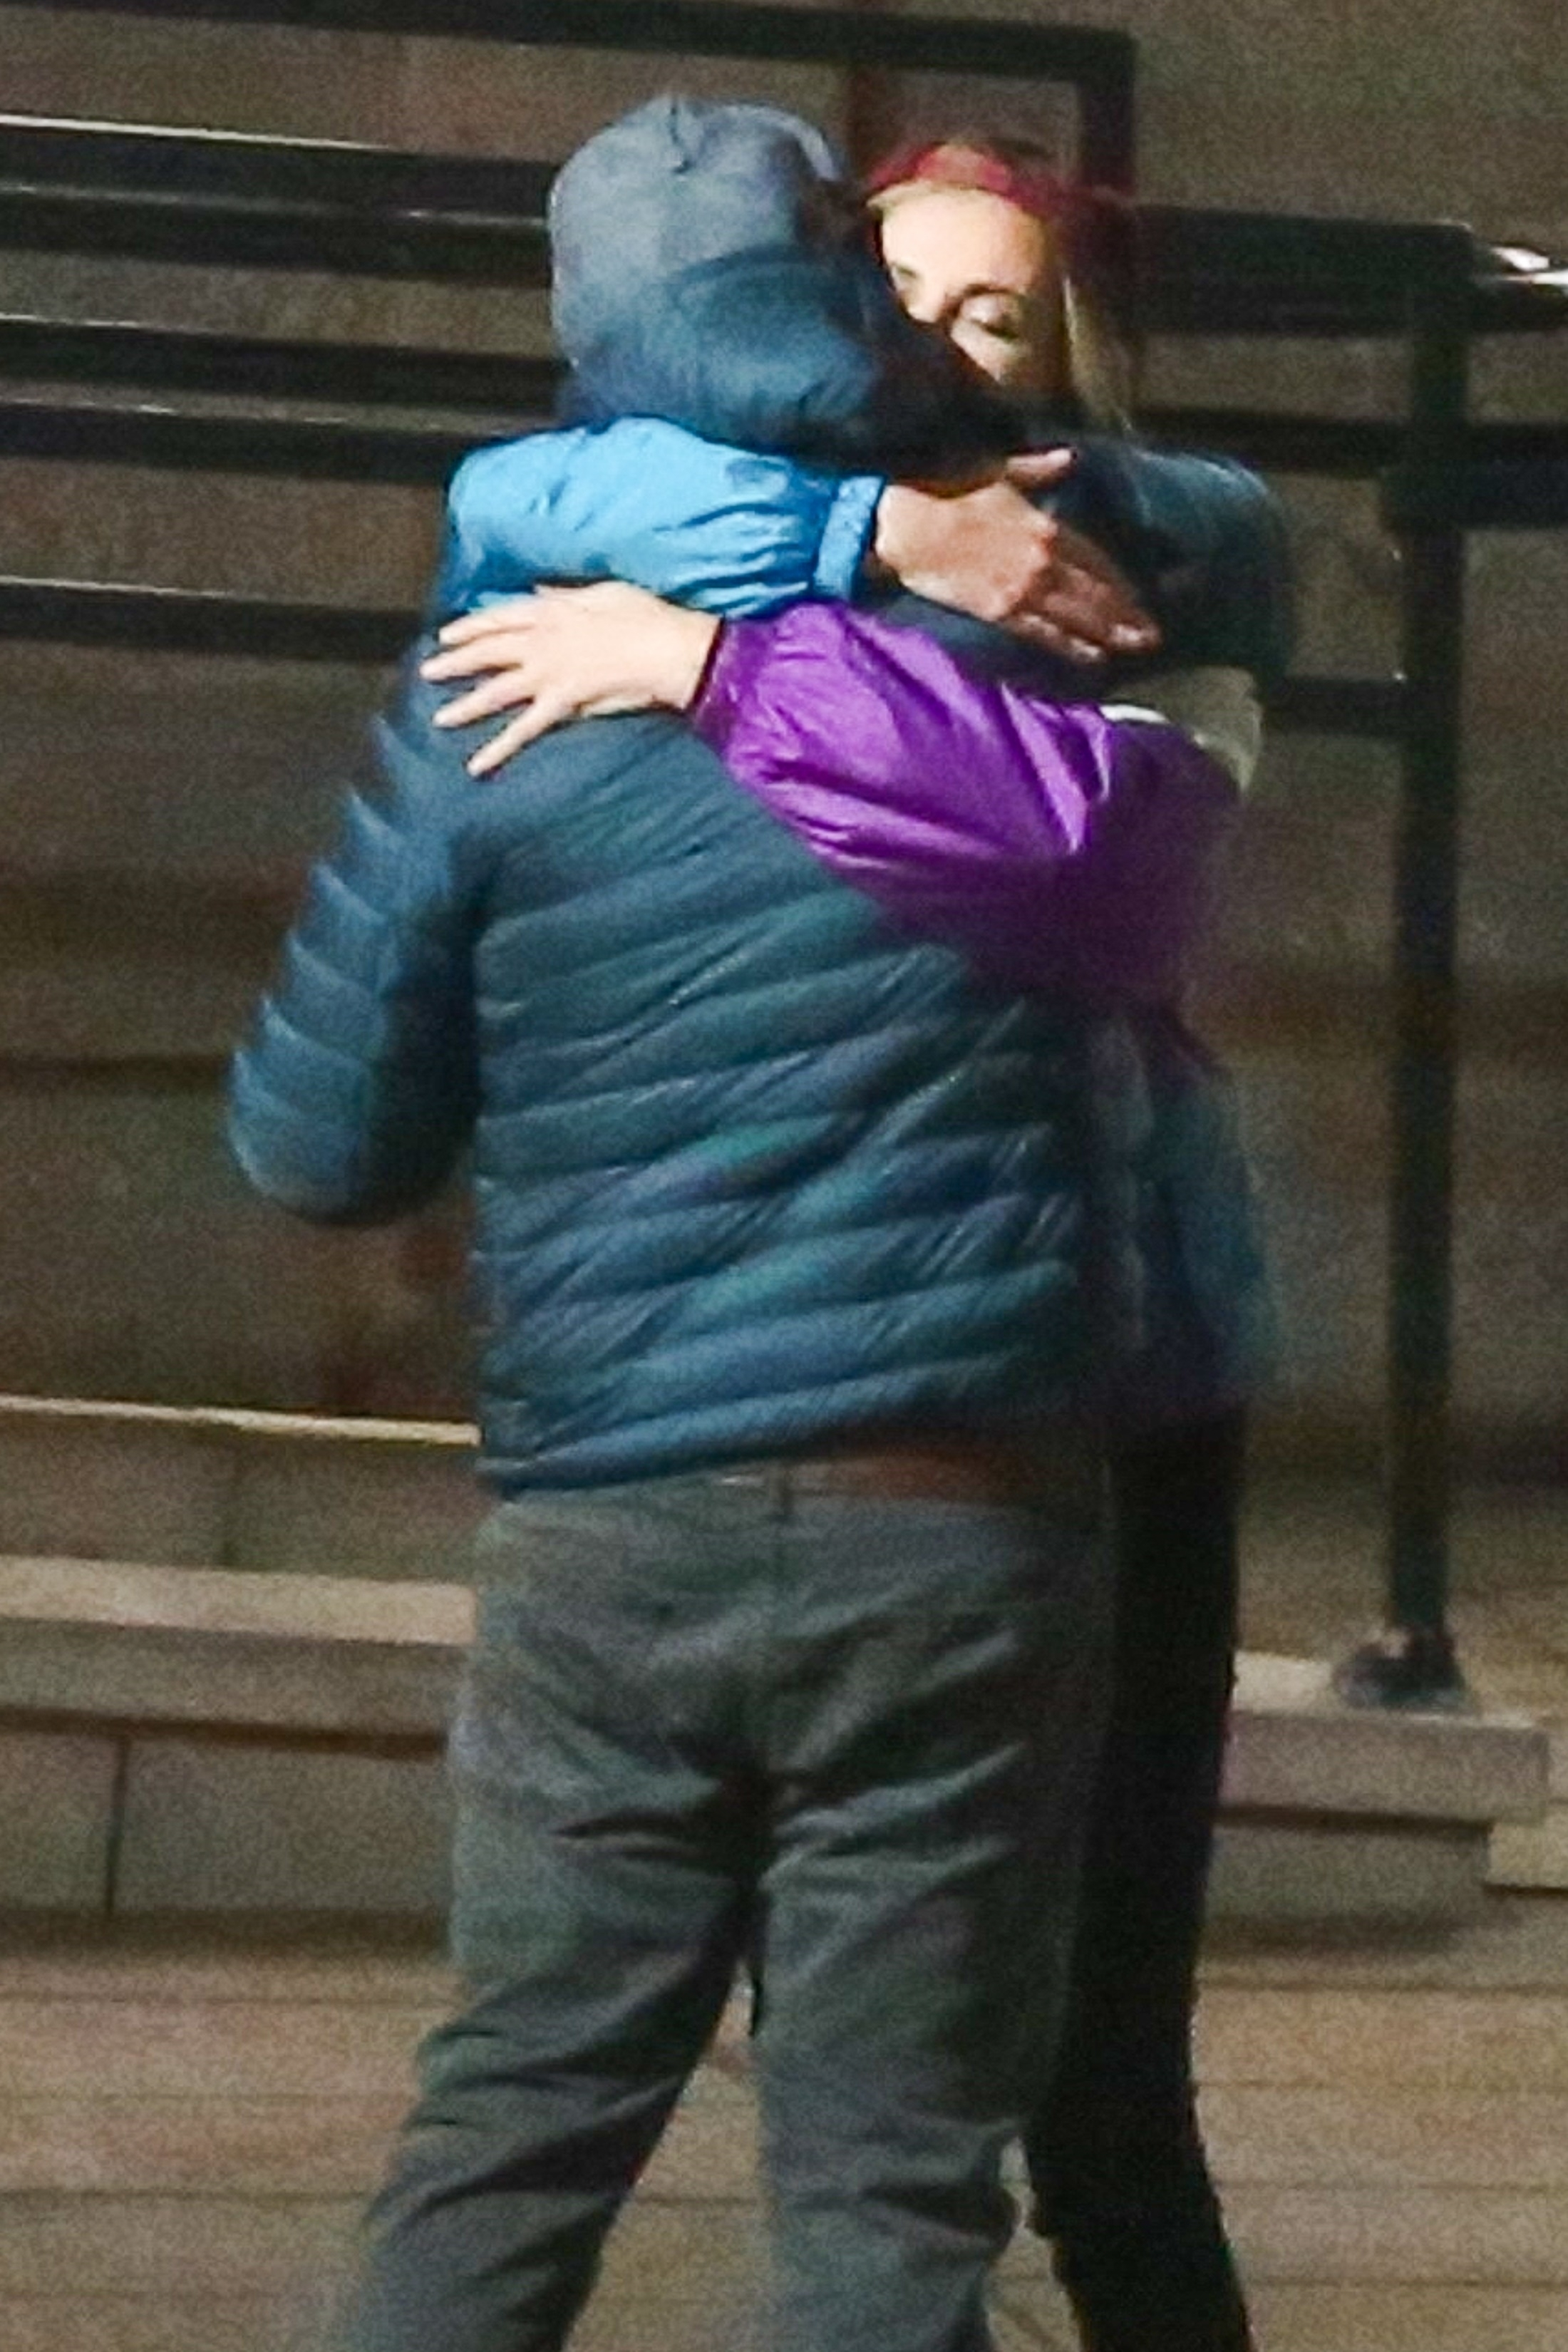 Charlize Theron and Seth Rogen were seen sharing a hug while filming their new movie in Montreal, Canada on Oct. 27, 2017.